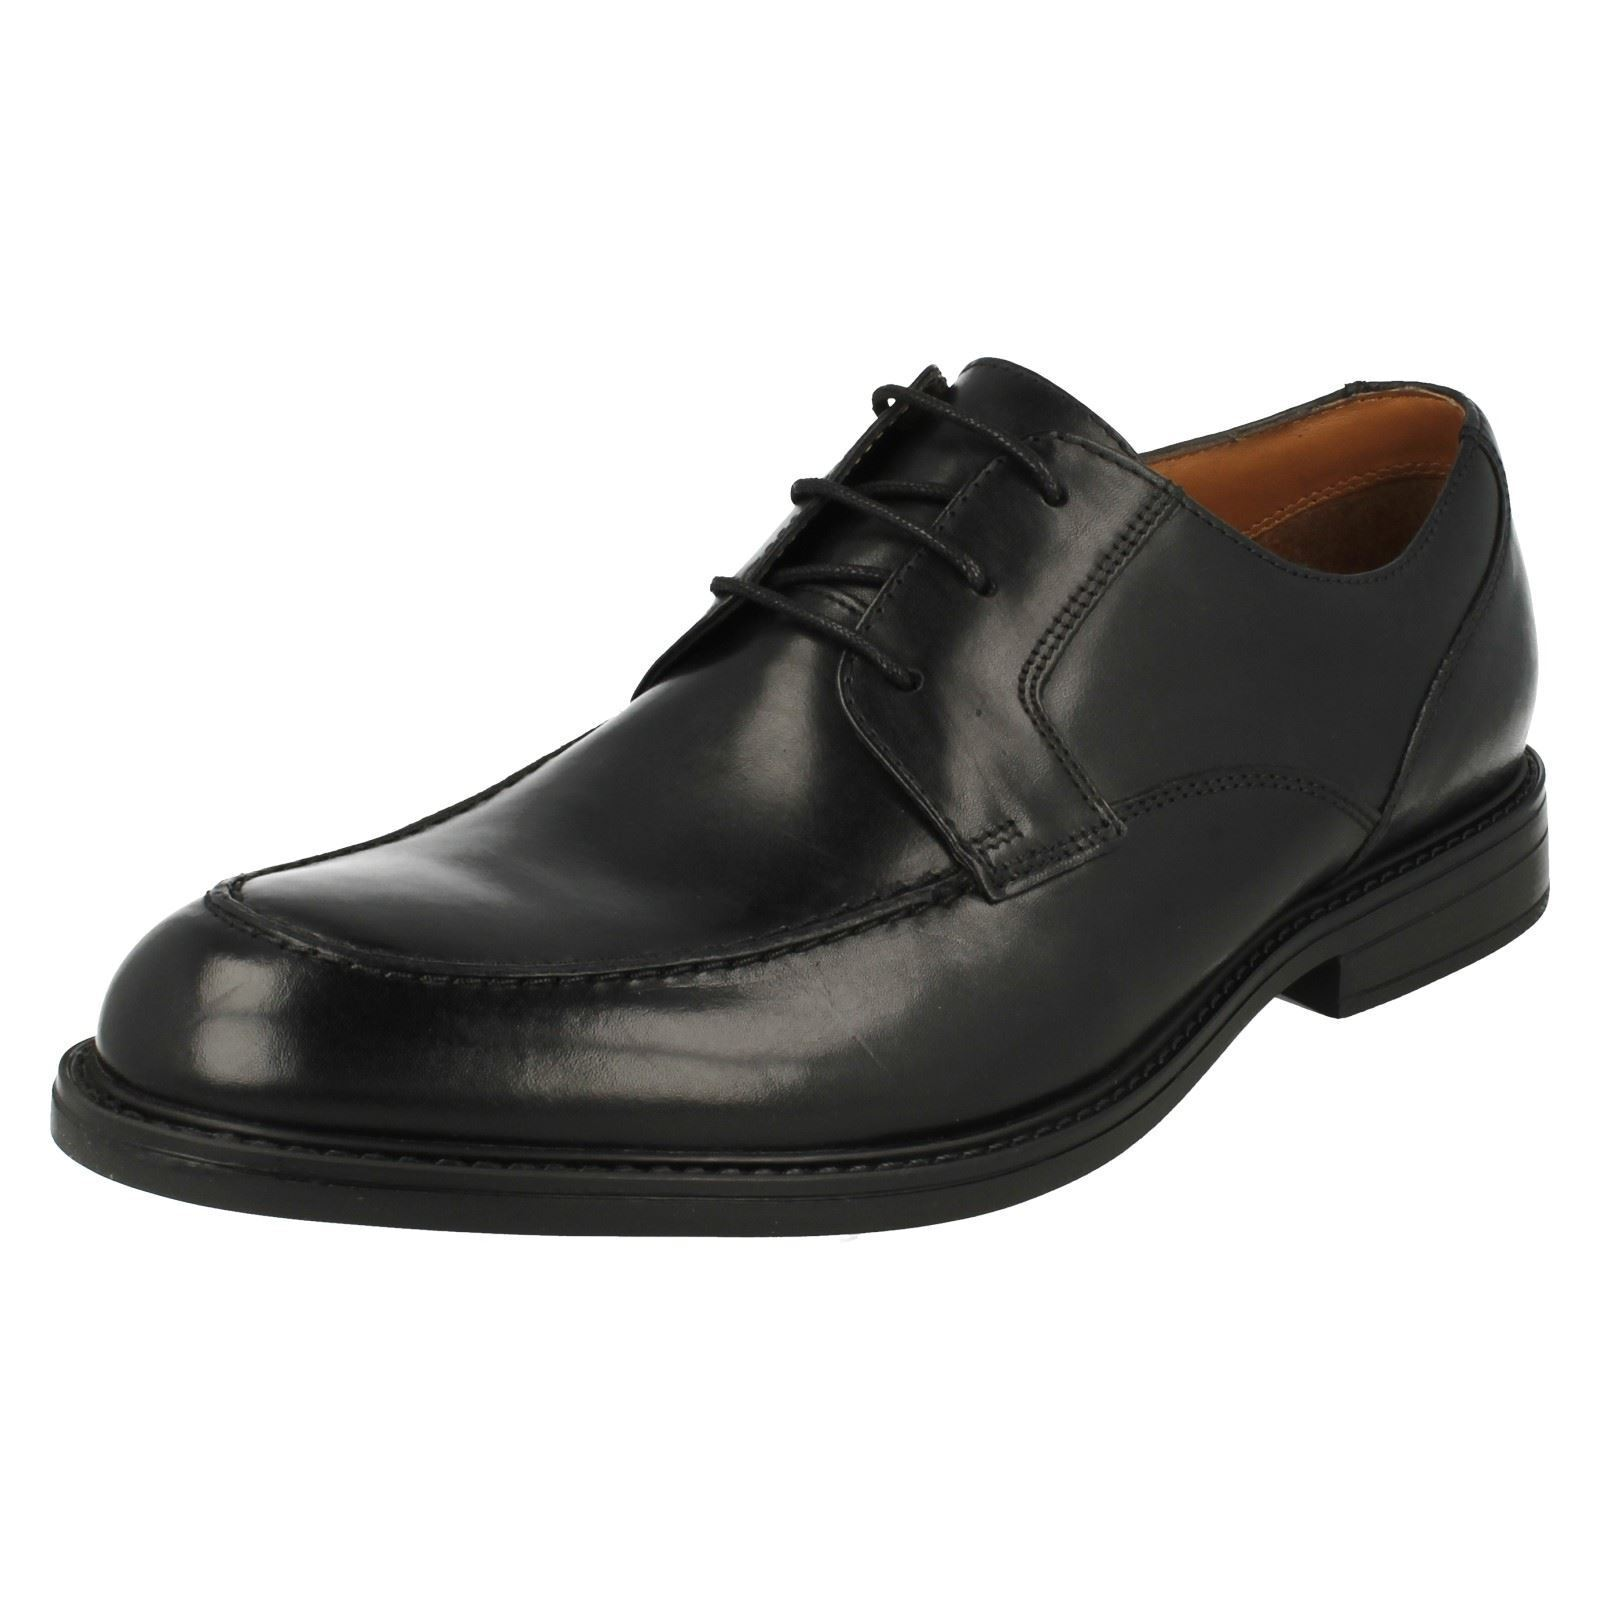 Clarks  Uomo Formal Beckfield Lace Up Schuhes Beckfield Formal Apron 5de2b6